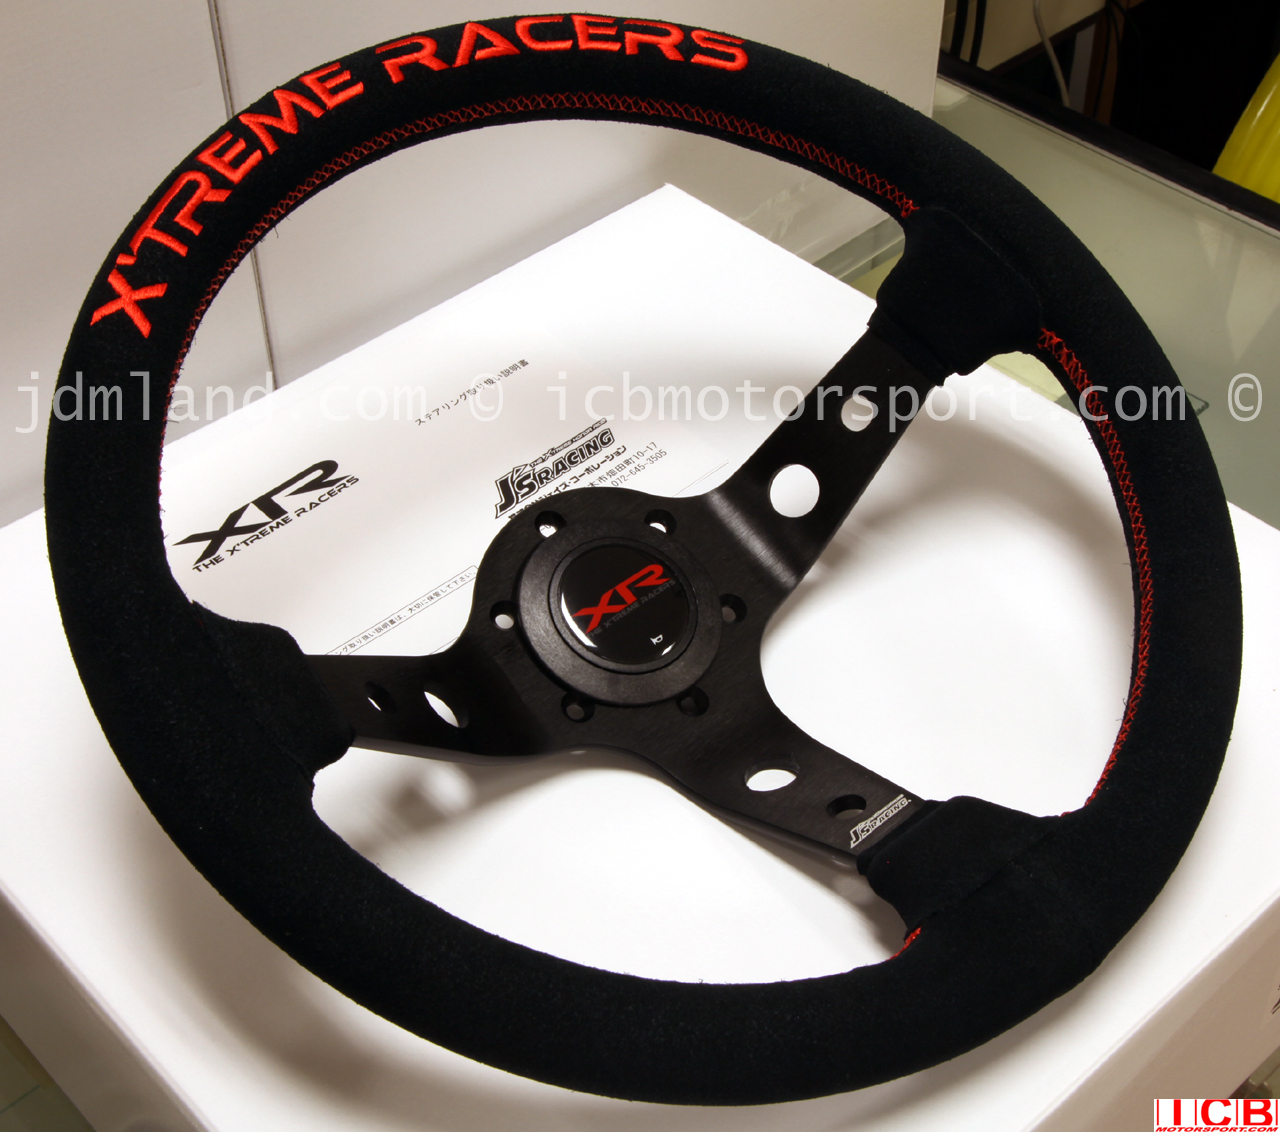 Driving gloves for suede steering wheel - Driving Gloves For Suede Steering Wheel 35